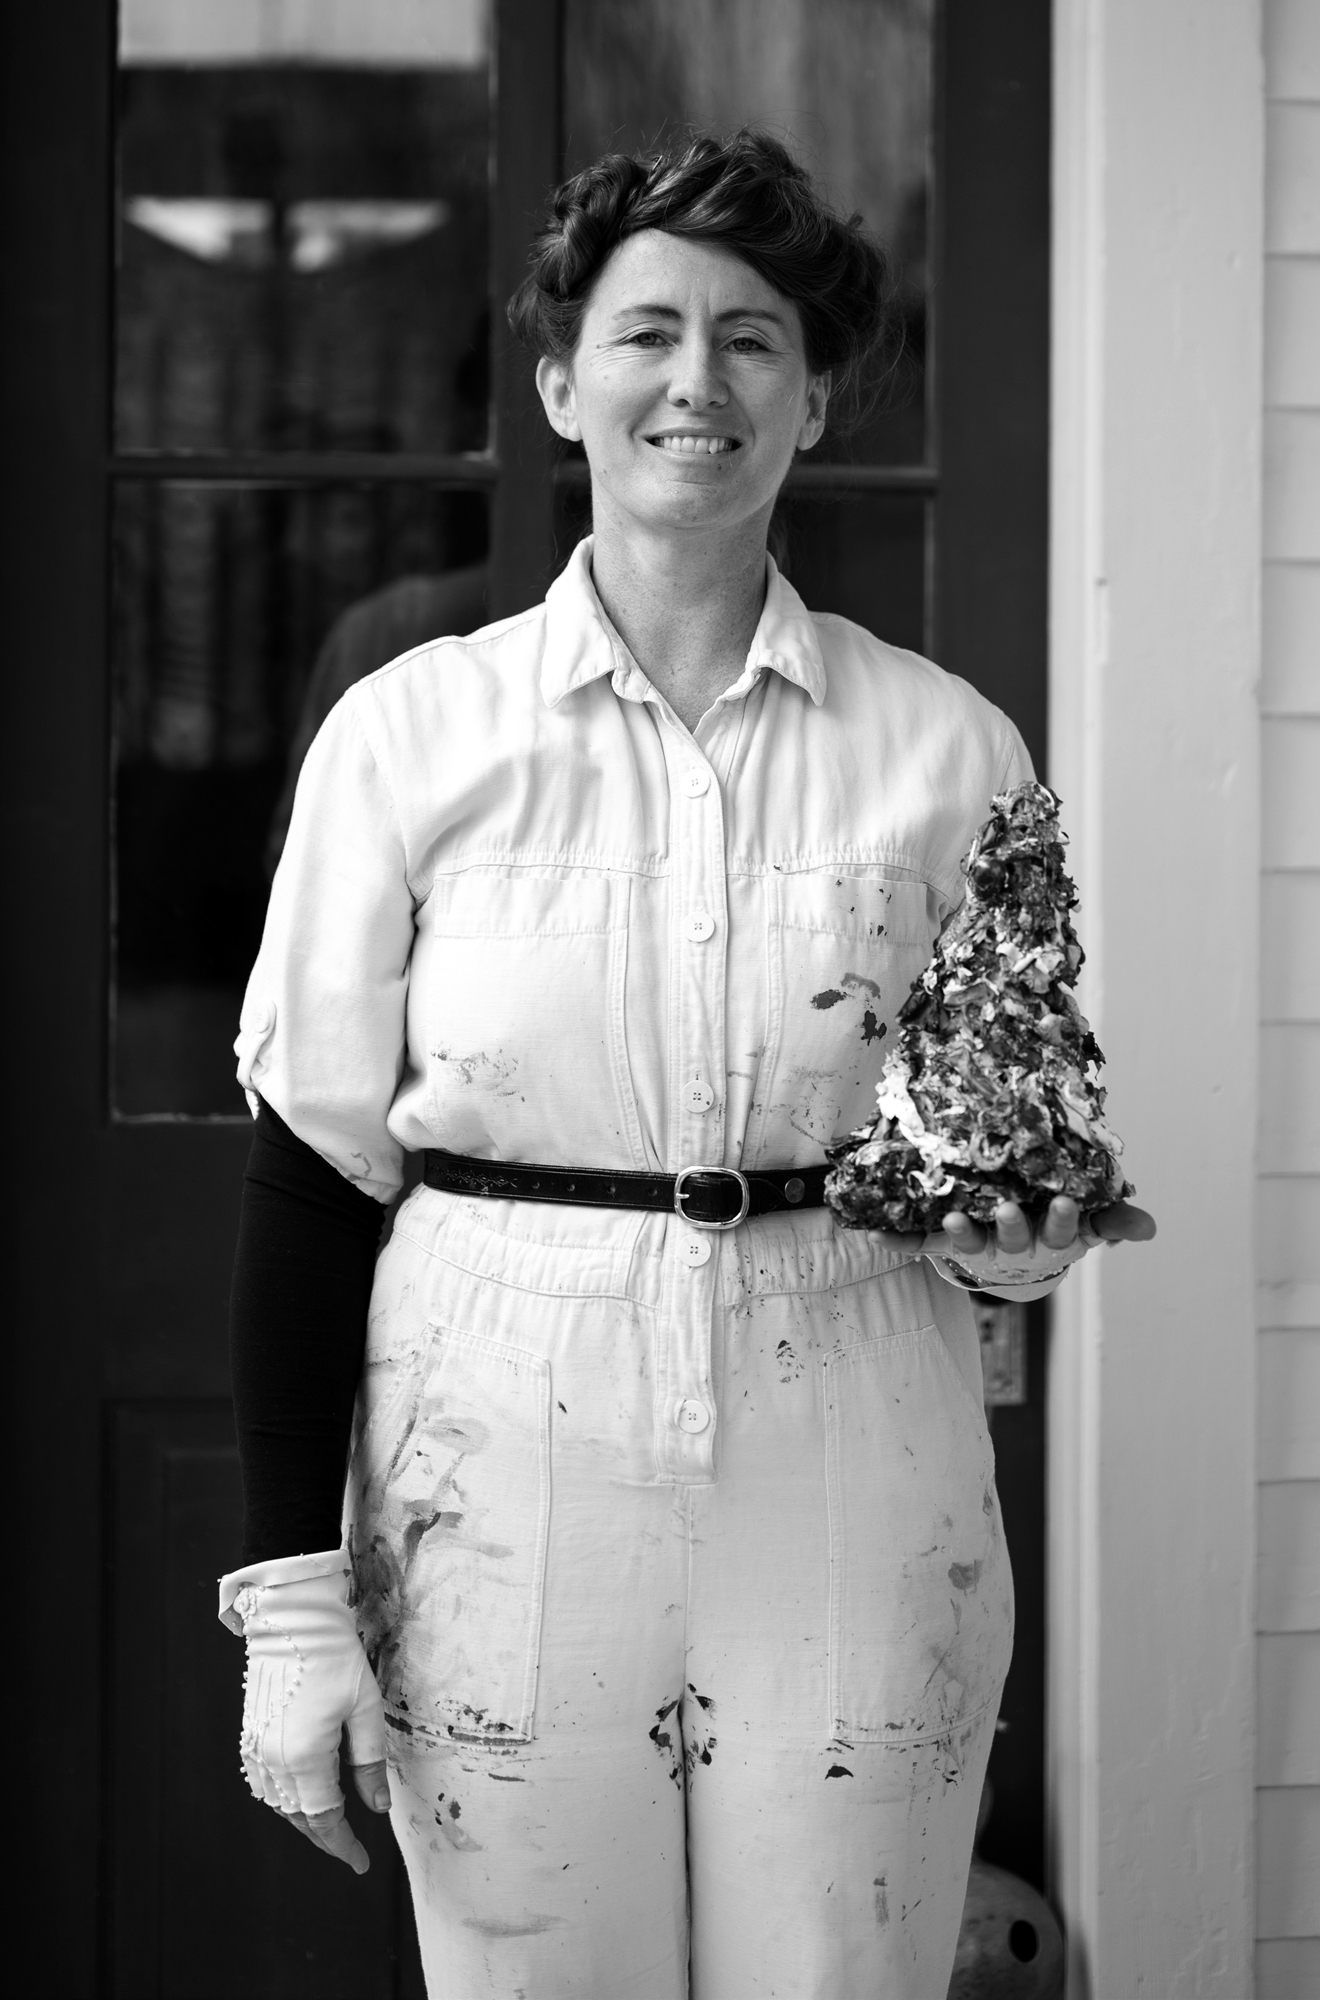 A black and white portrait of Rose McBurney standing and holding a sculpture. She's a light-skinned woman dressed in a light jumpsuit, and her dark hair is pulled back in a bun. She's smiling and is wearing white, fingerless gloves. Photo by Katie Sikora.